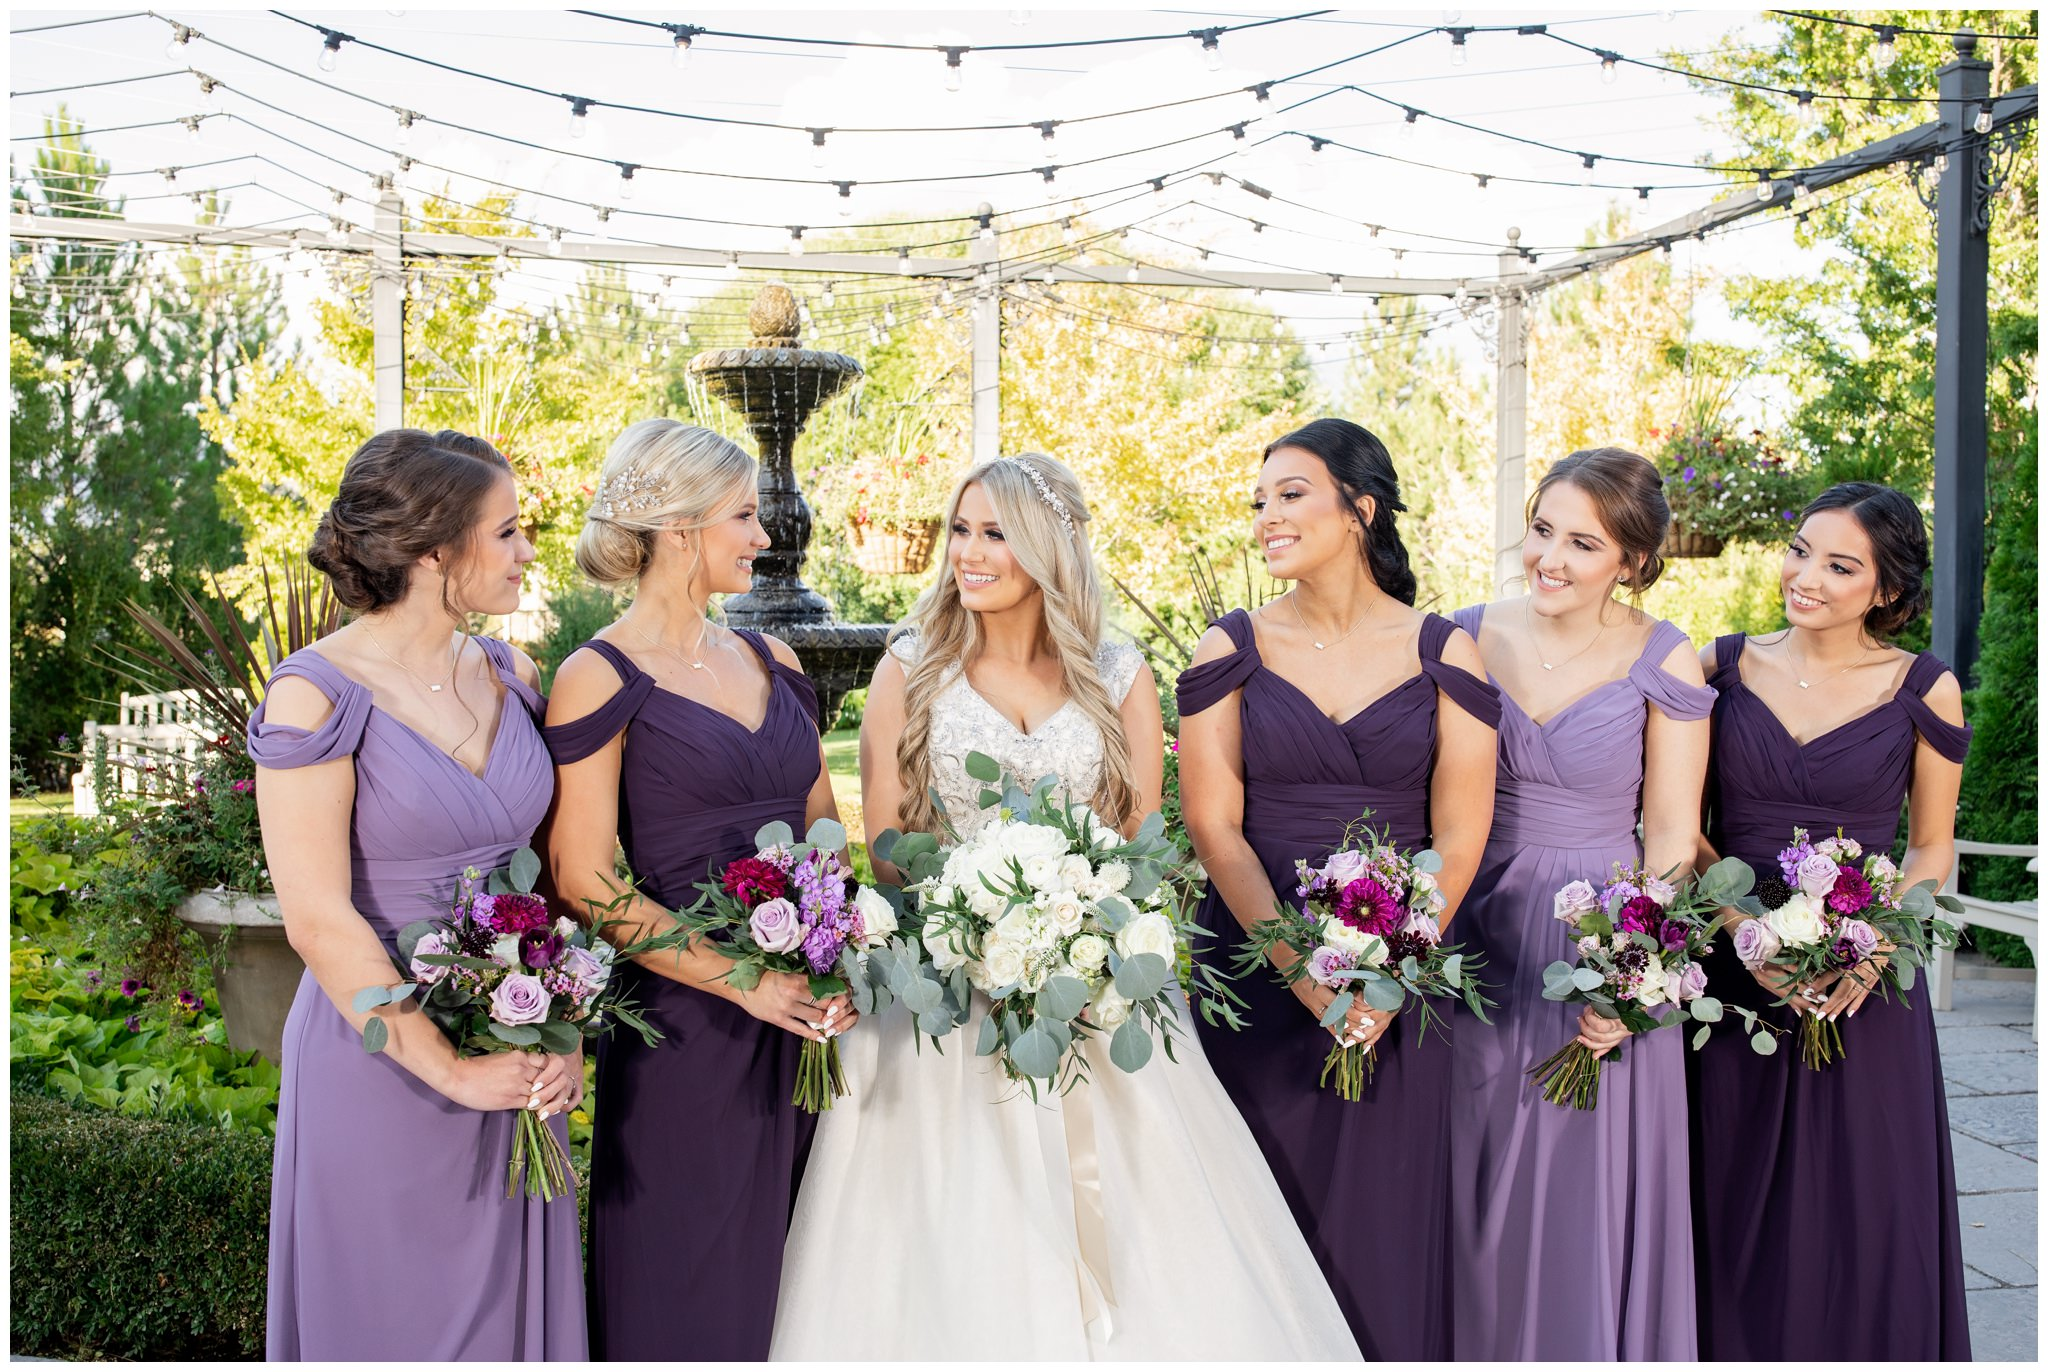 Wedding party pictures at utah wedding venue